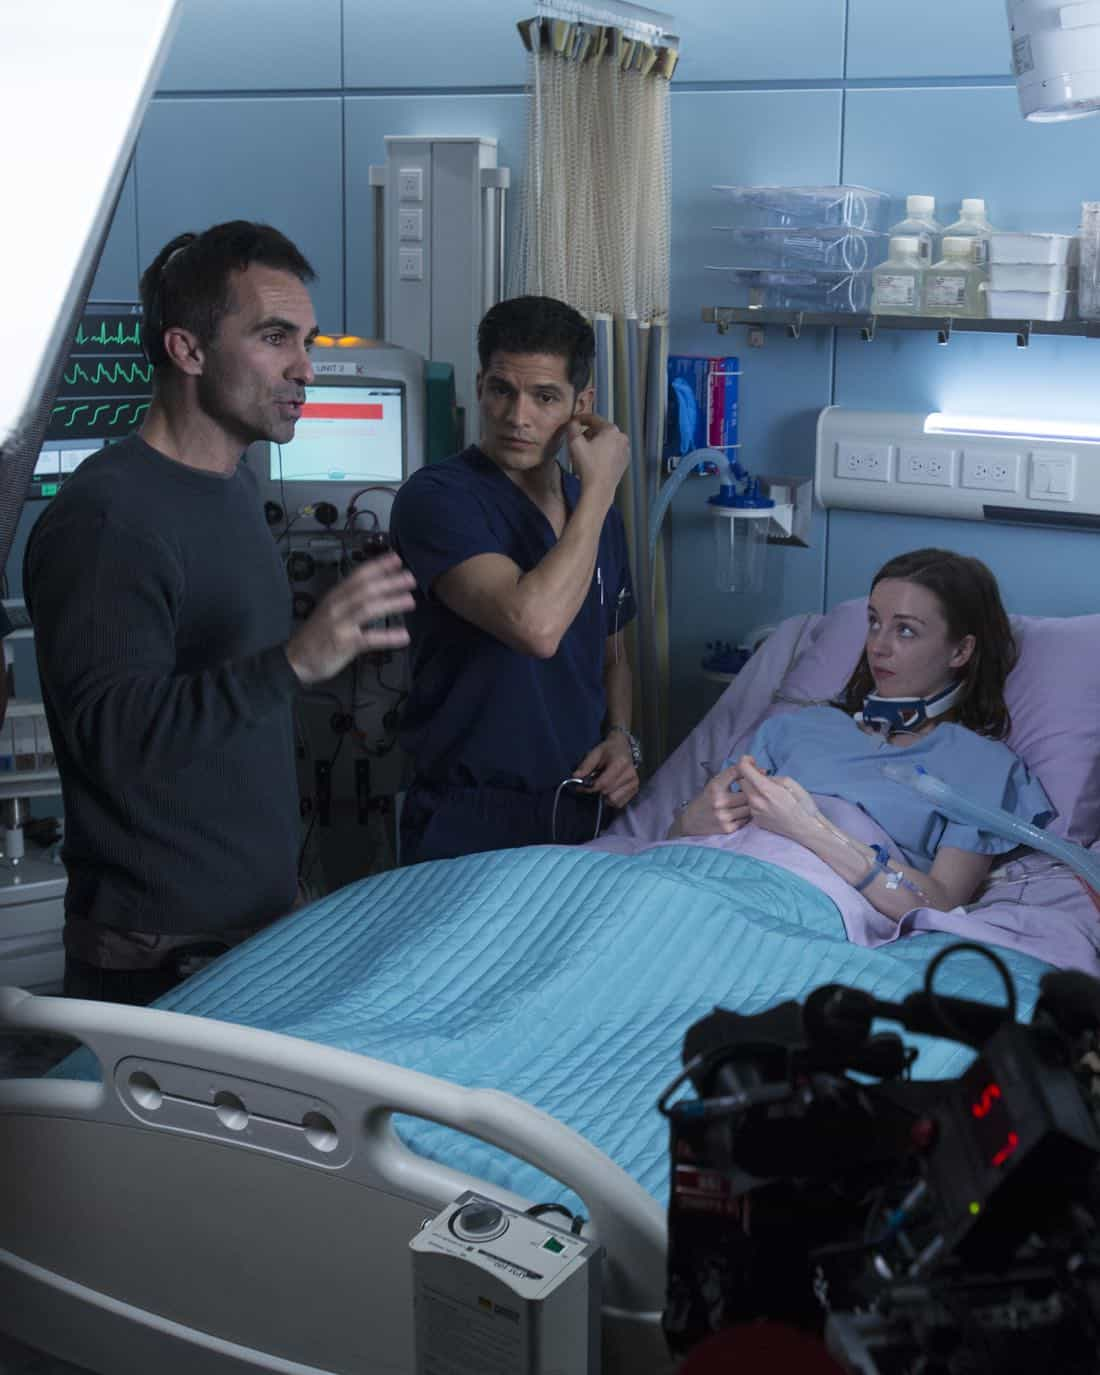 """THE GOOD DOCTOR - """"Apple"""" - During a robbery at the grocery mart Dr. Shaun Murphy is shopping at, his communication limitations puts lives at risk. Meanwhile, after Shaun's traumatic day, Dr. Aaron Glassman worries that he isn't doing enough to help Shaun, on """"The Good Doctor,"""" MONDAY, NOV. 20 (10:01-11:00 p.m. EST), on The ABC Television Network. (ABC/Jack Rowand) NESTOR CARBONELL (DIRECTOR), NICHOLAS GONZALEZ, KACEY ROHL"""